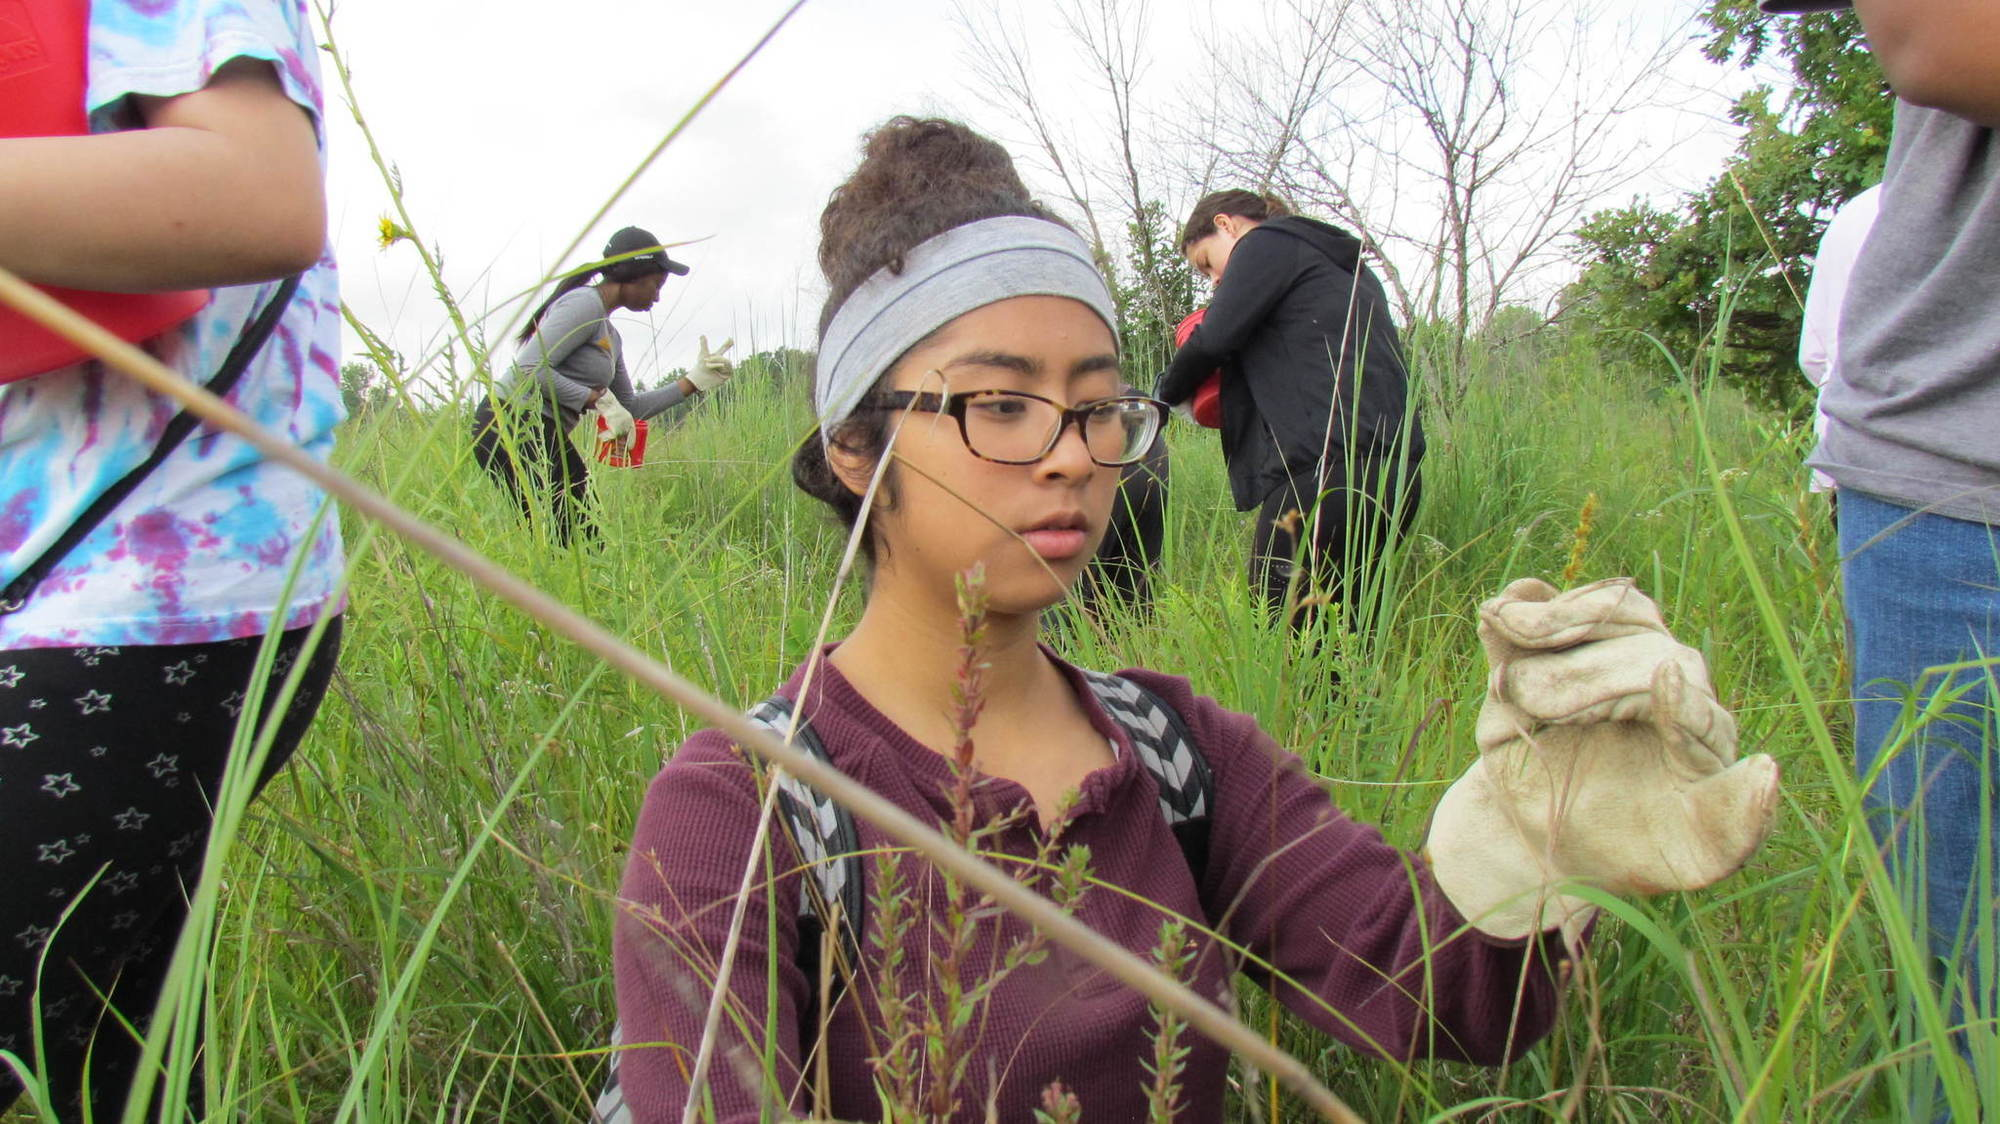 Fermilab program helps Aurora-area students get back to nature